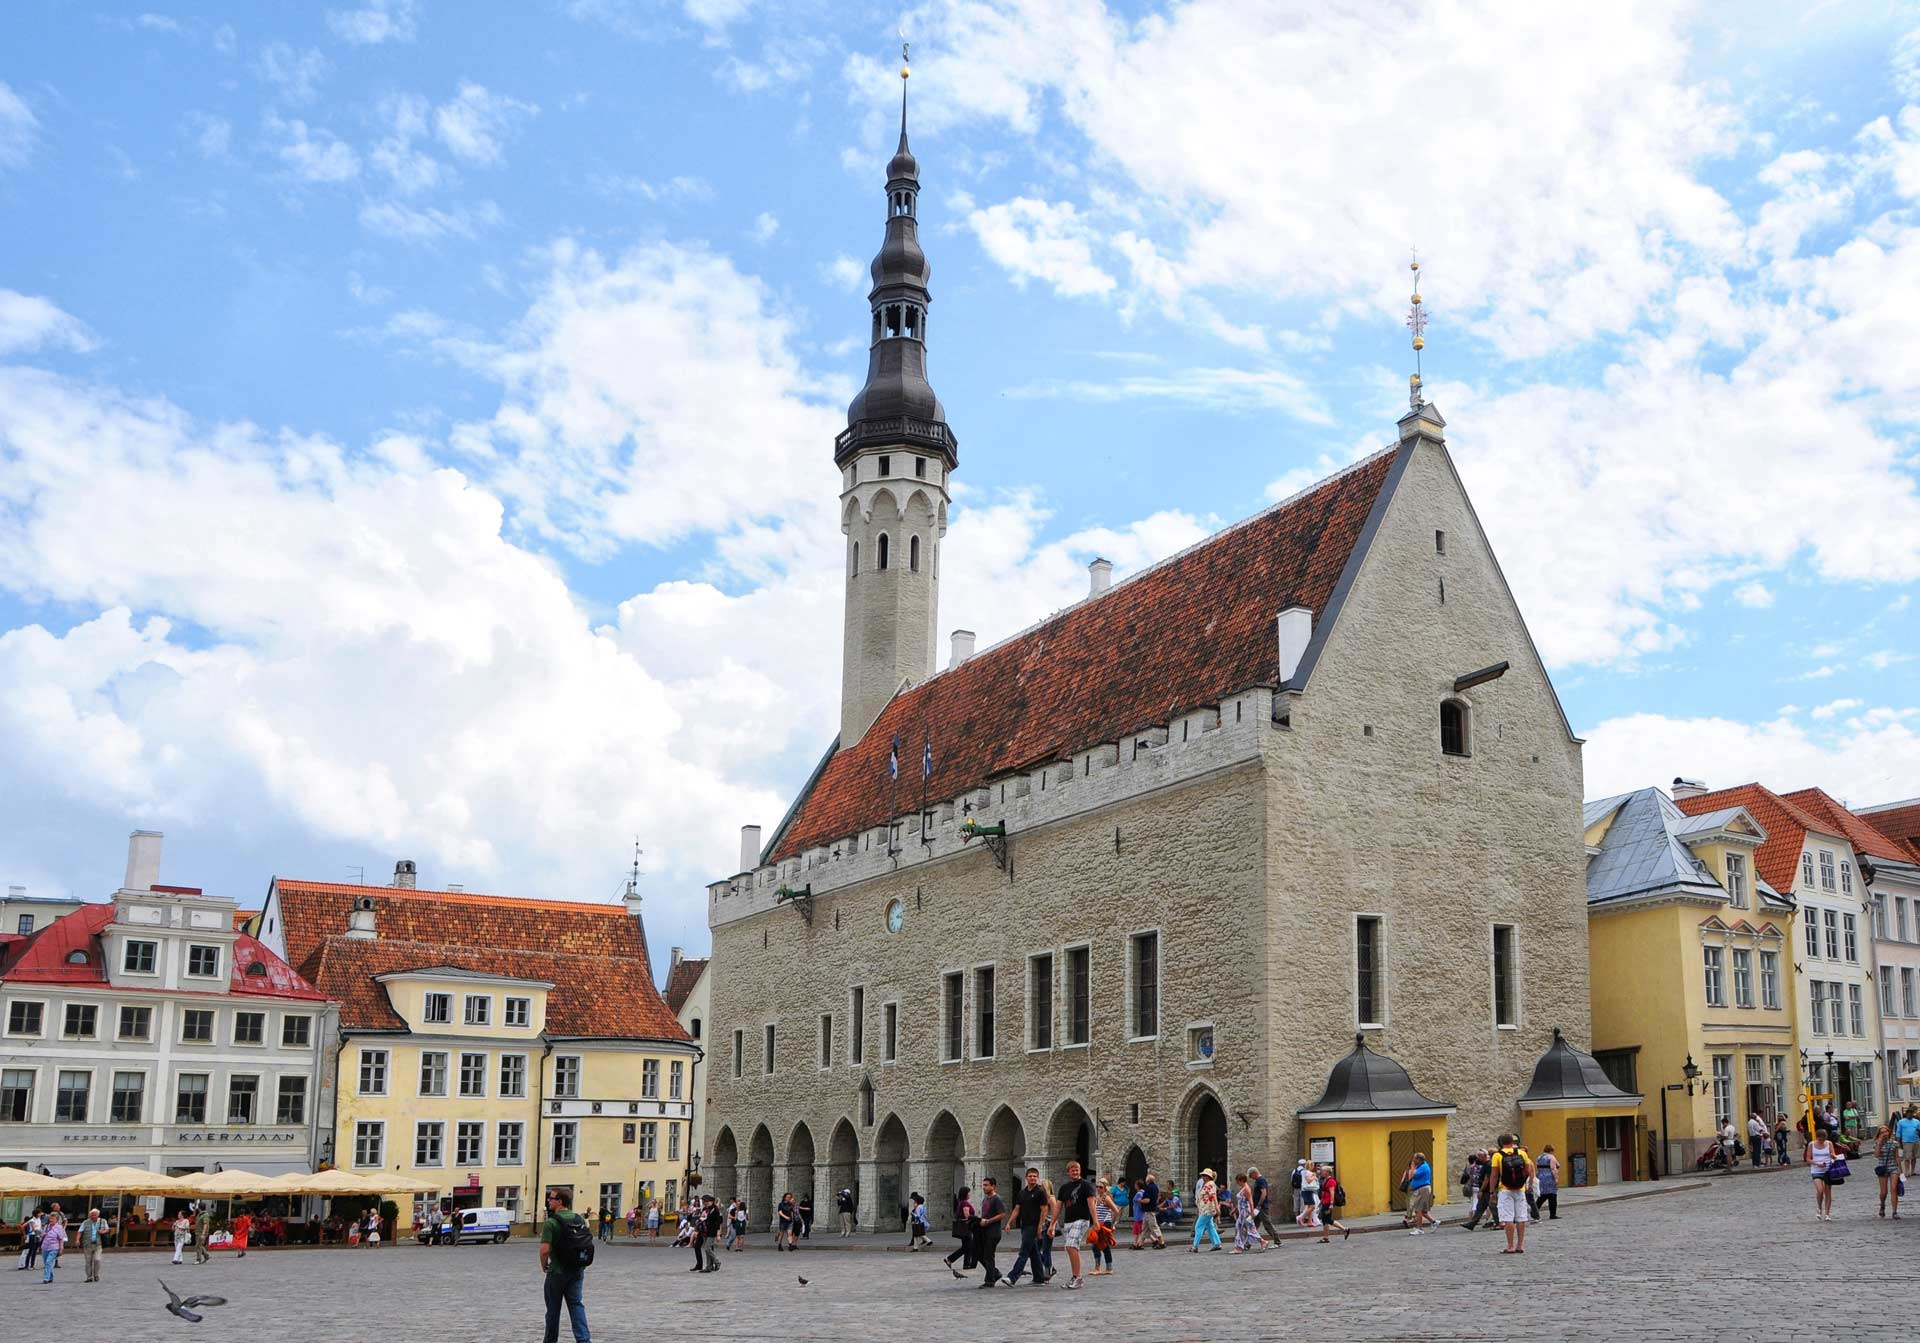 Town Hall Square of Tallinn, Estonia